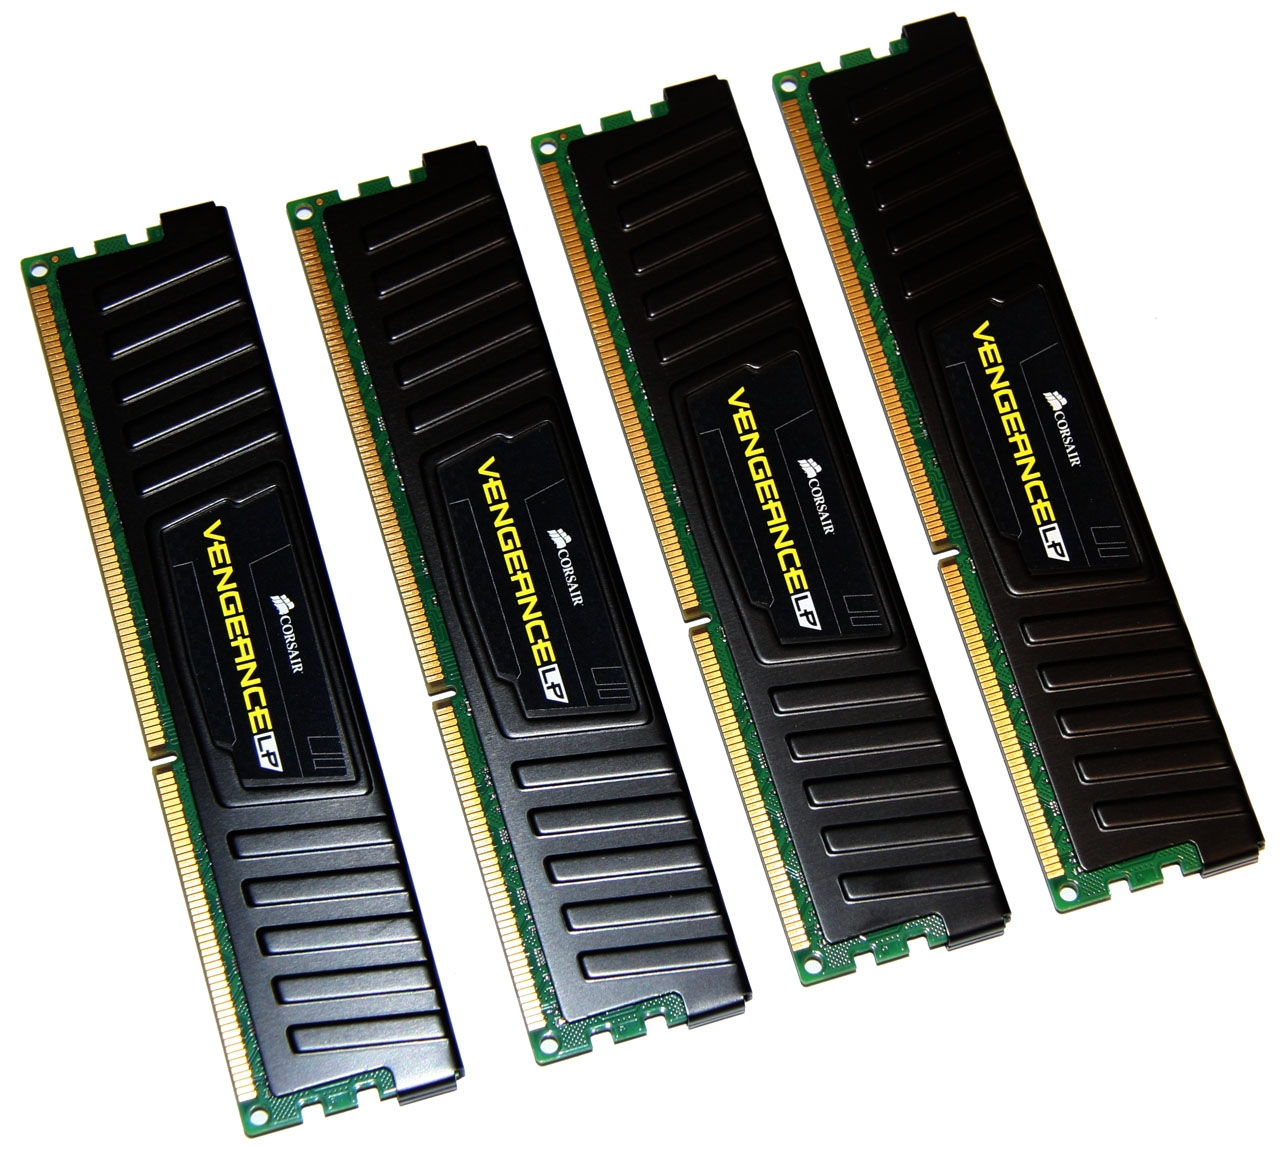 4495_02_corsair_vengeance_lp_pc3_12800_16gb_kit_review_full.jpg